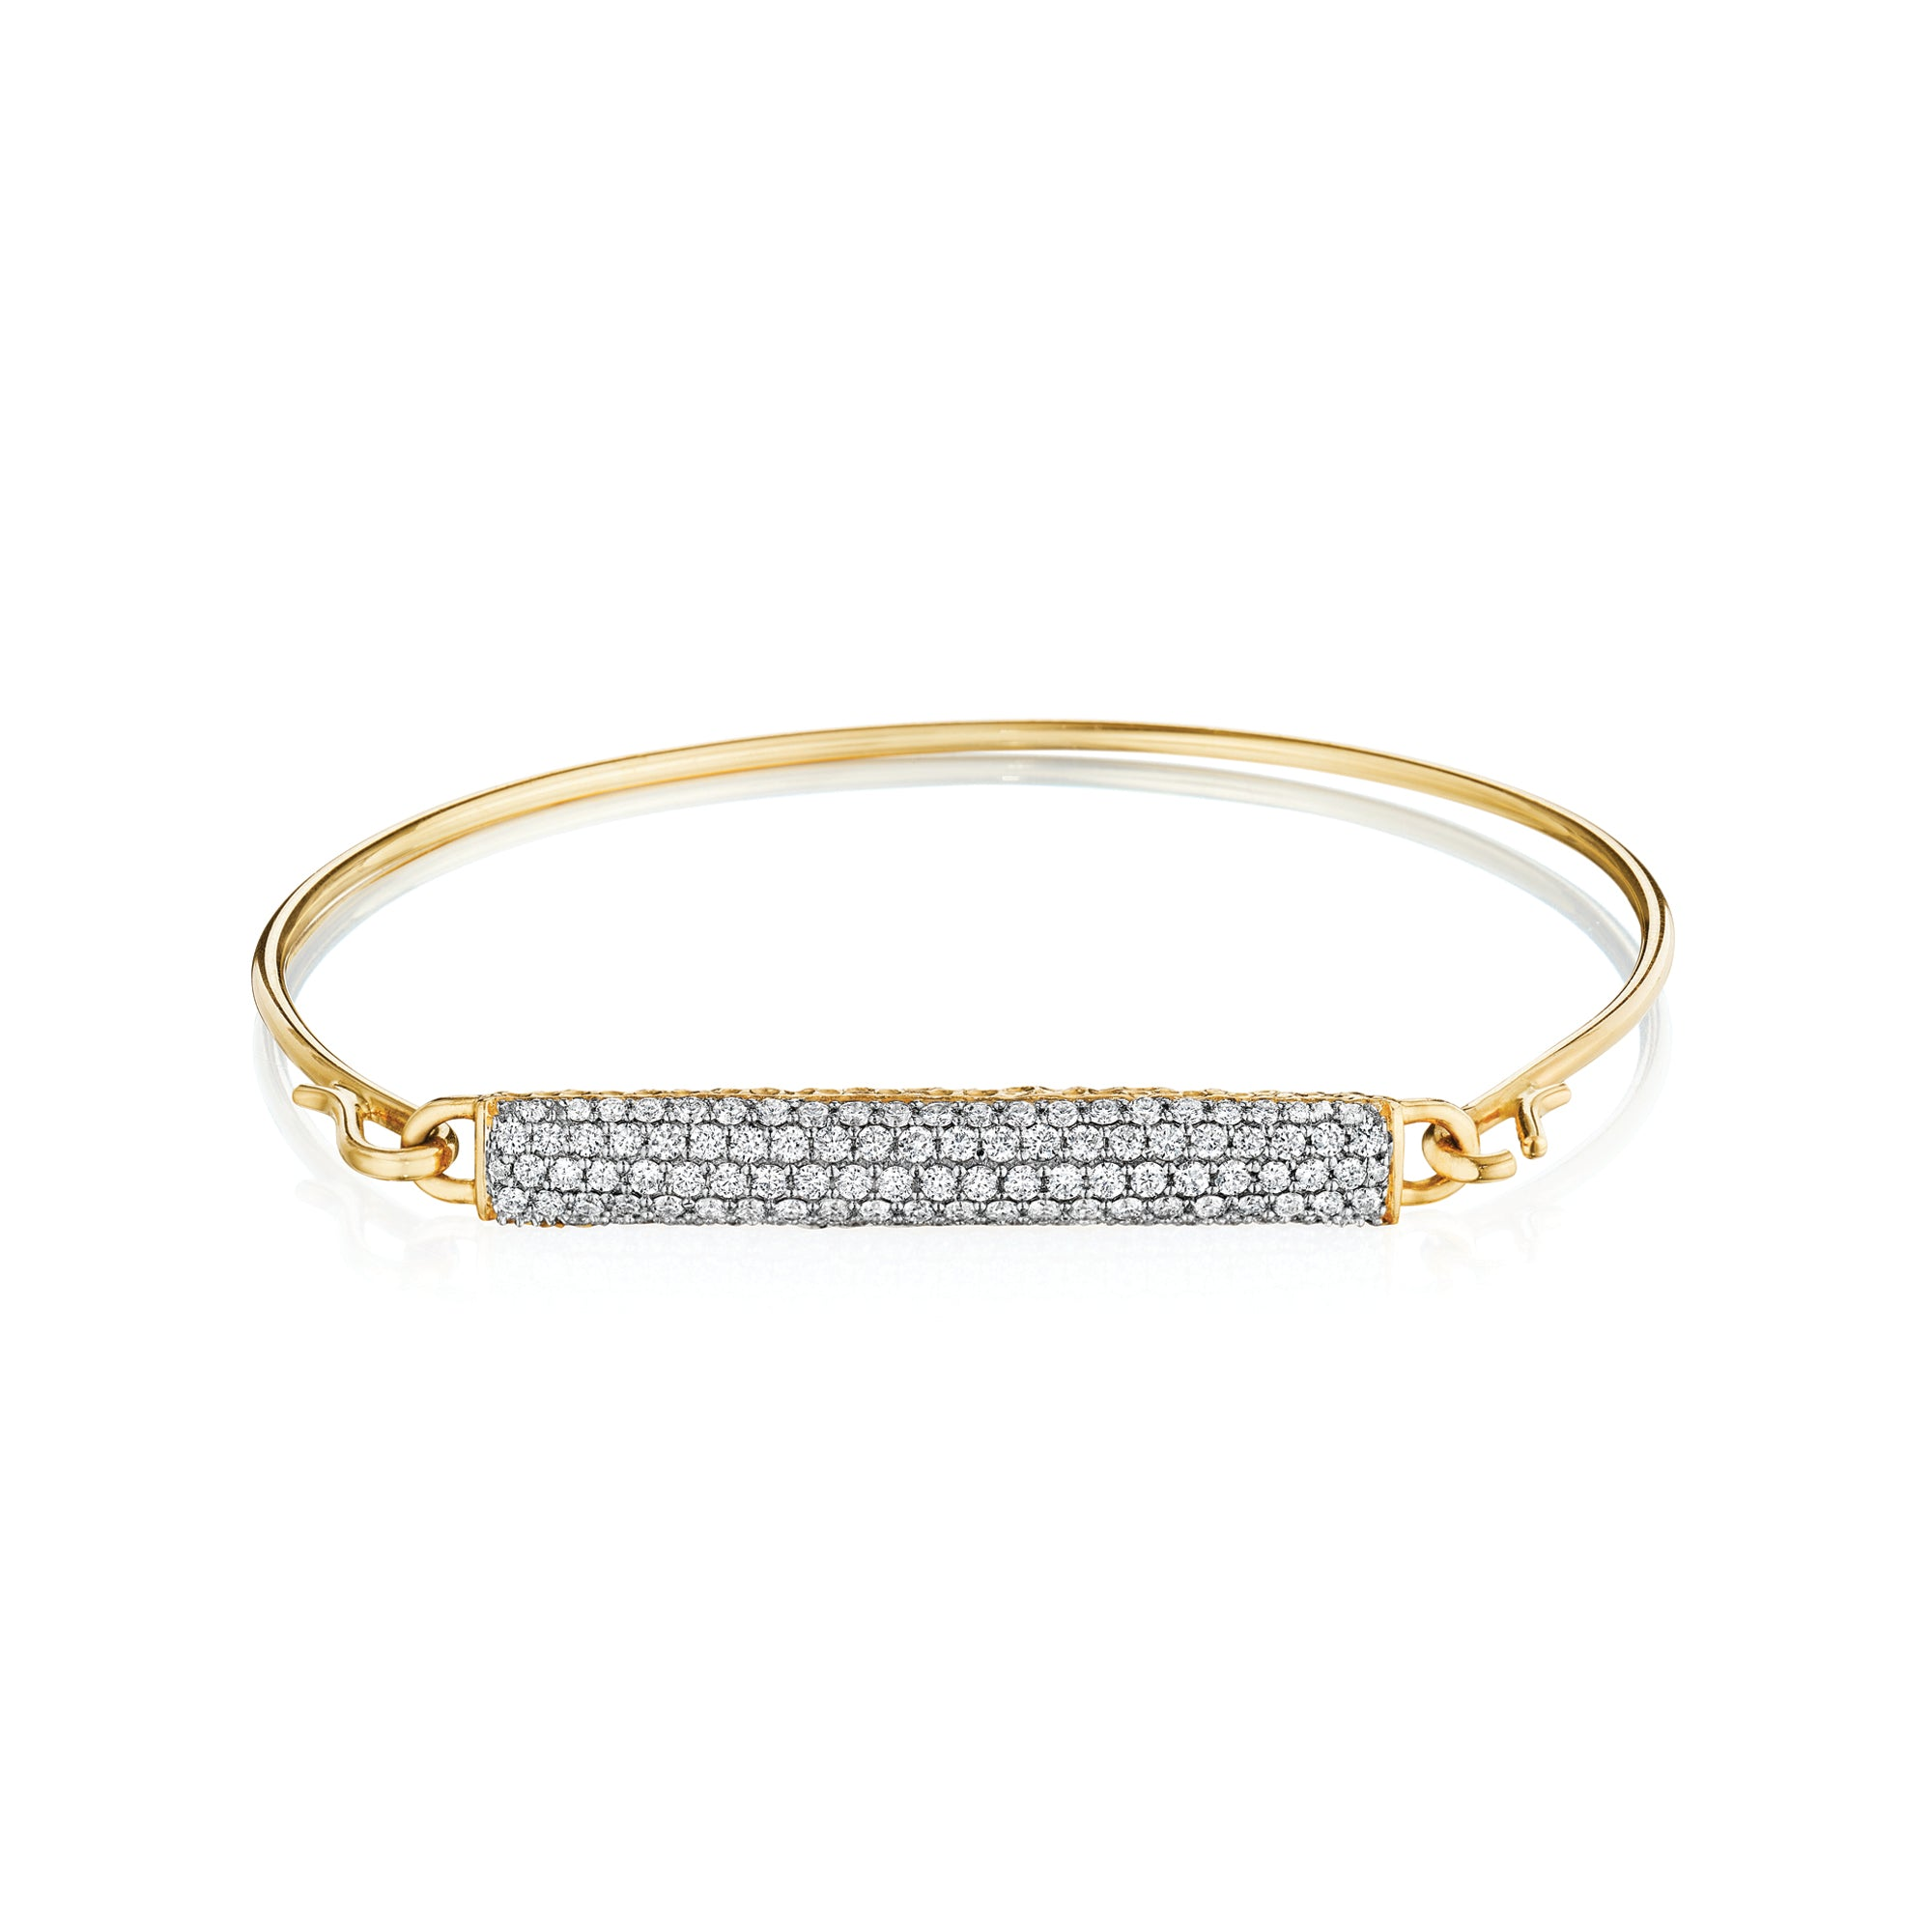 Phillips House Contrast Bar Diamond Wire Strap bracelet in 14kt yellow gold